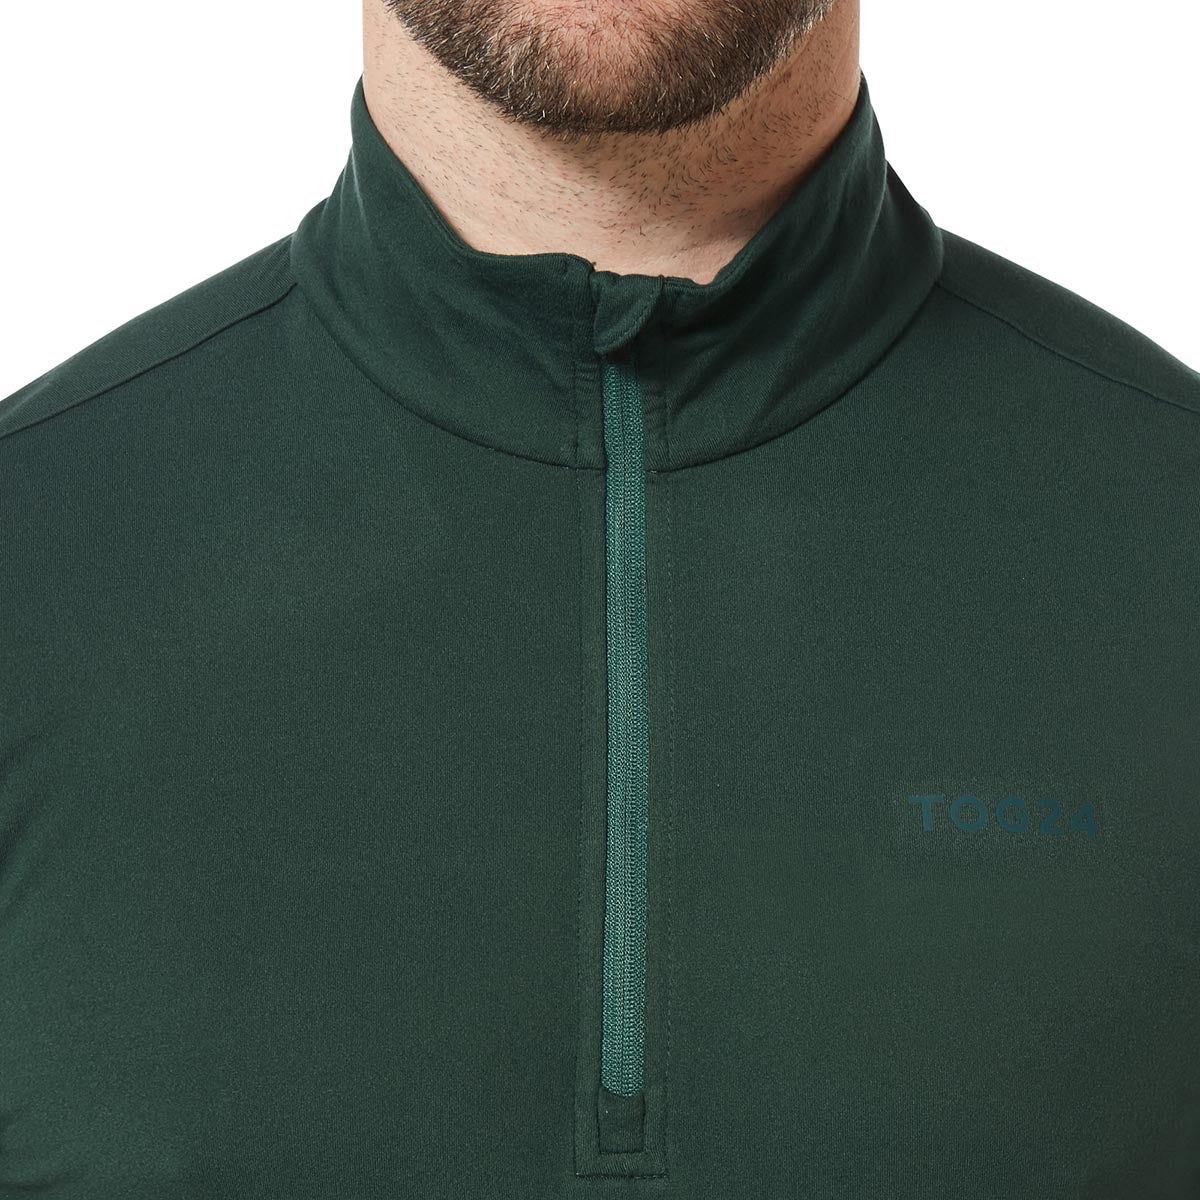 Robinson Mens Performance Zipneck - Forest Green image 4